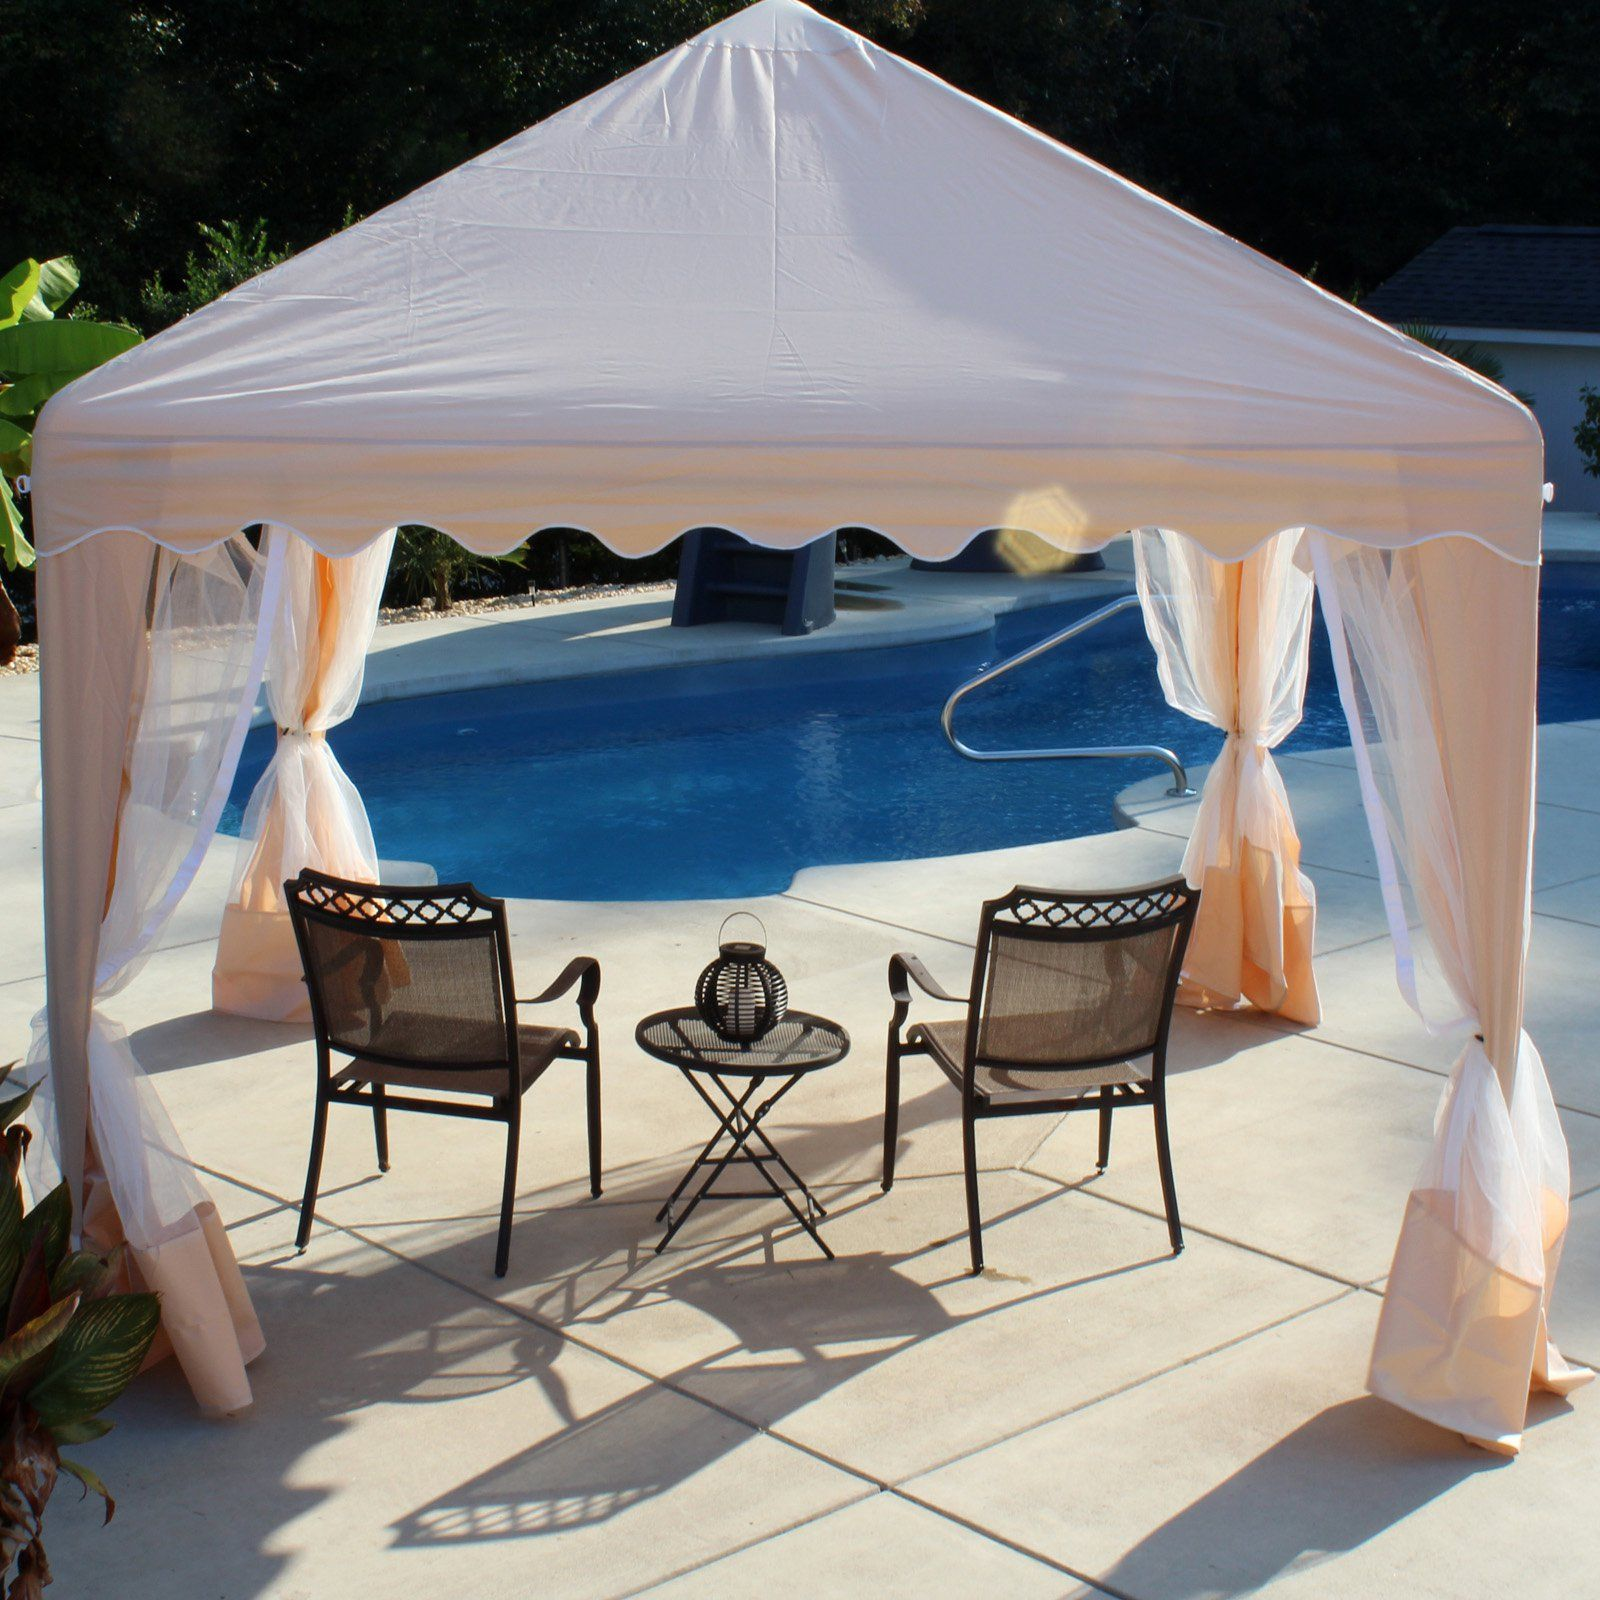 King Canopy 10 X 10 Ft Garden Party Gazebo Canopy Www Hayneedle Com Party Gazebo Gazebo Canopy Gazebo